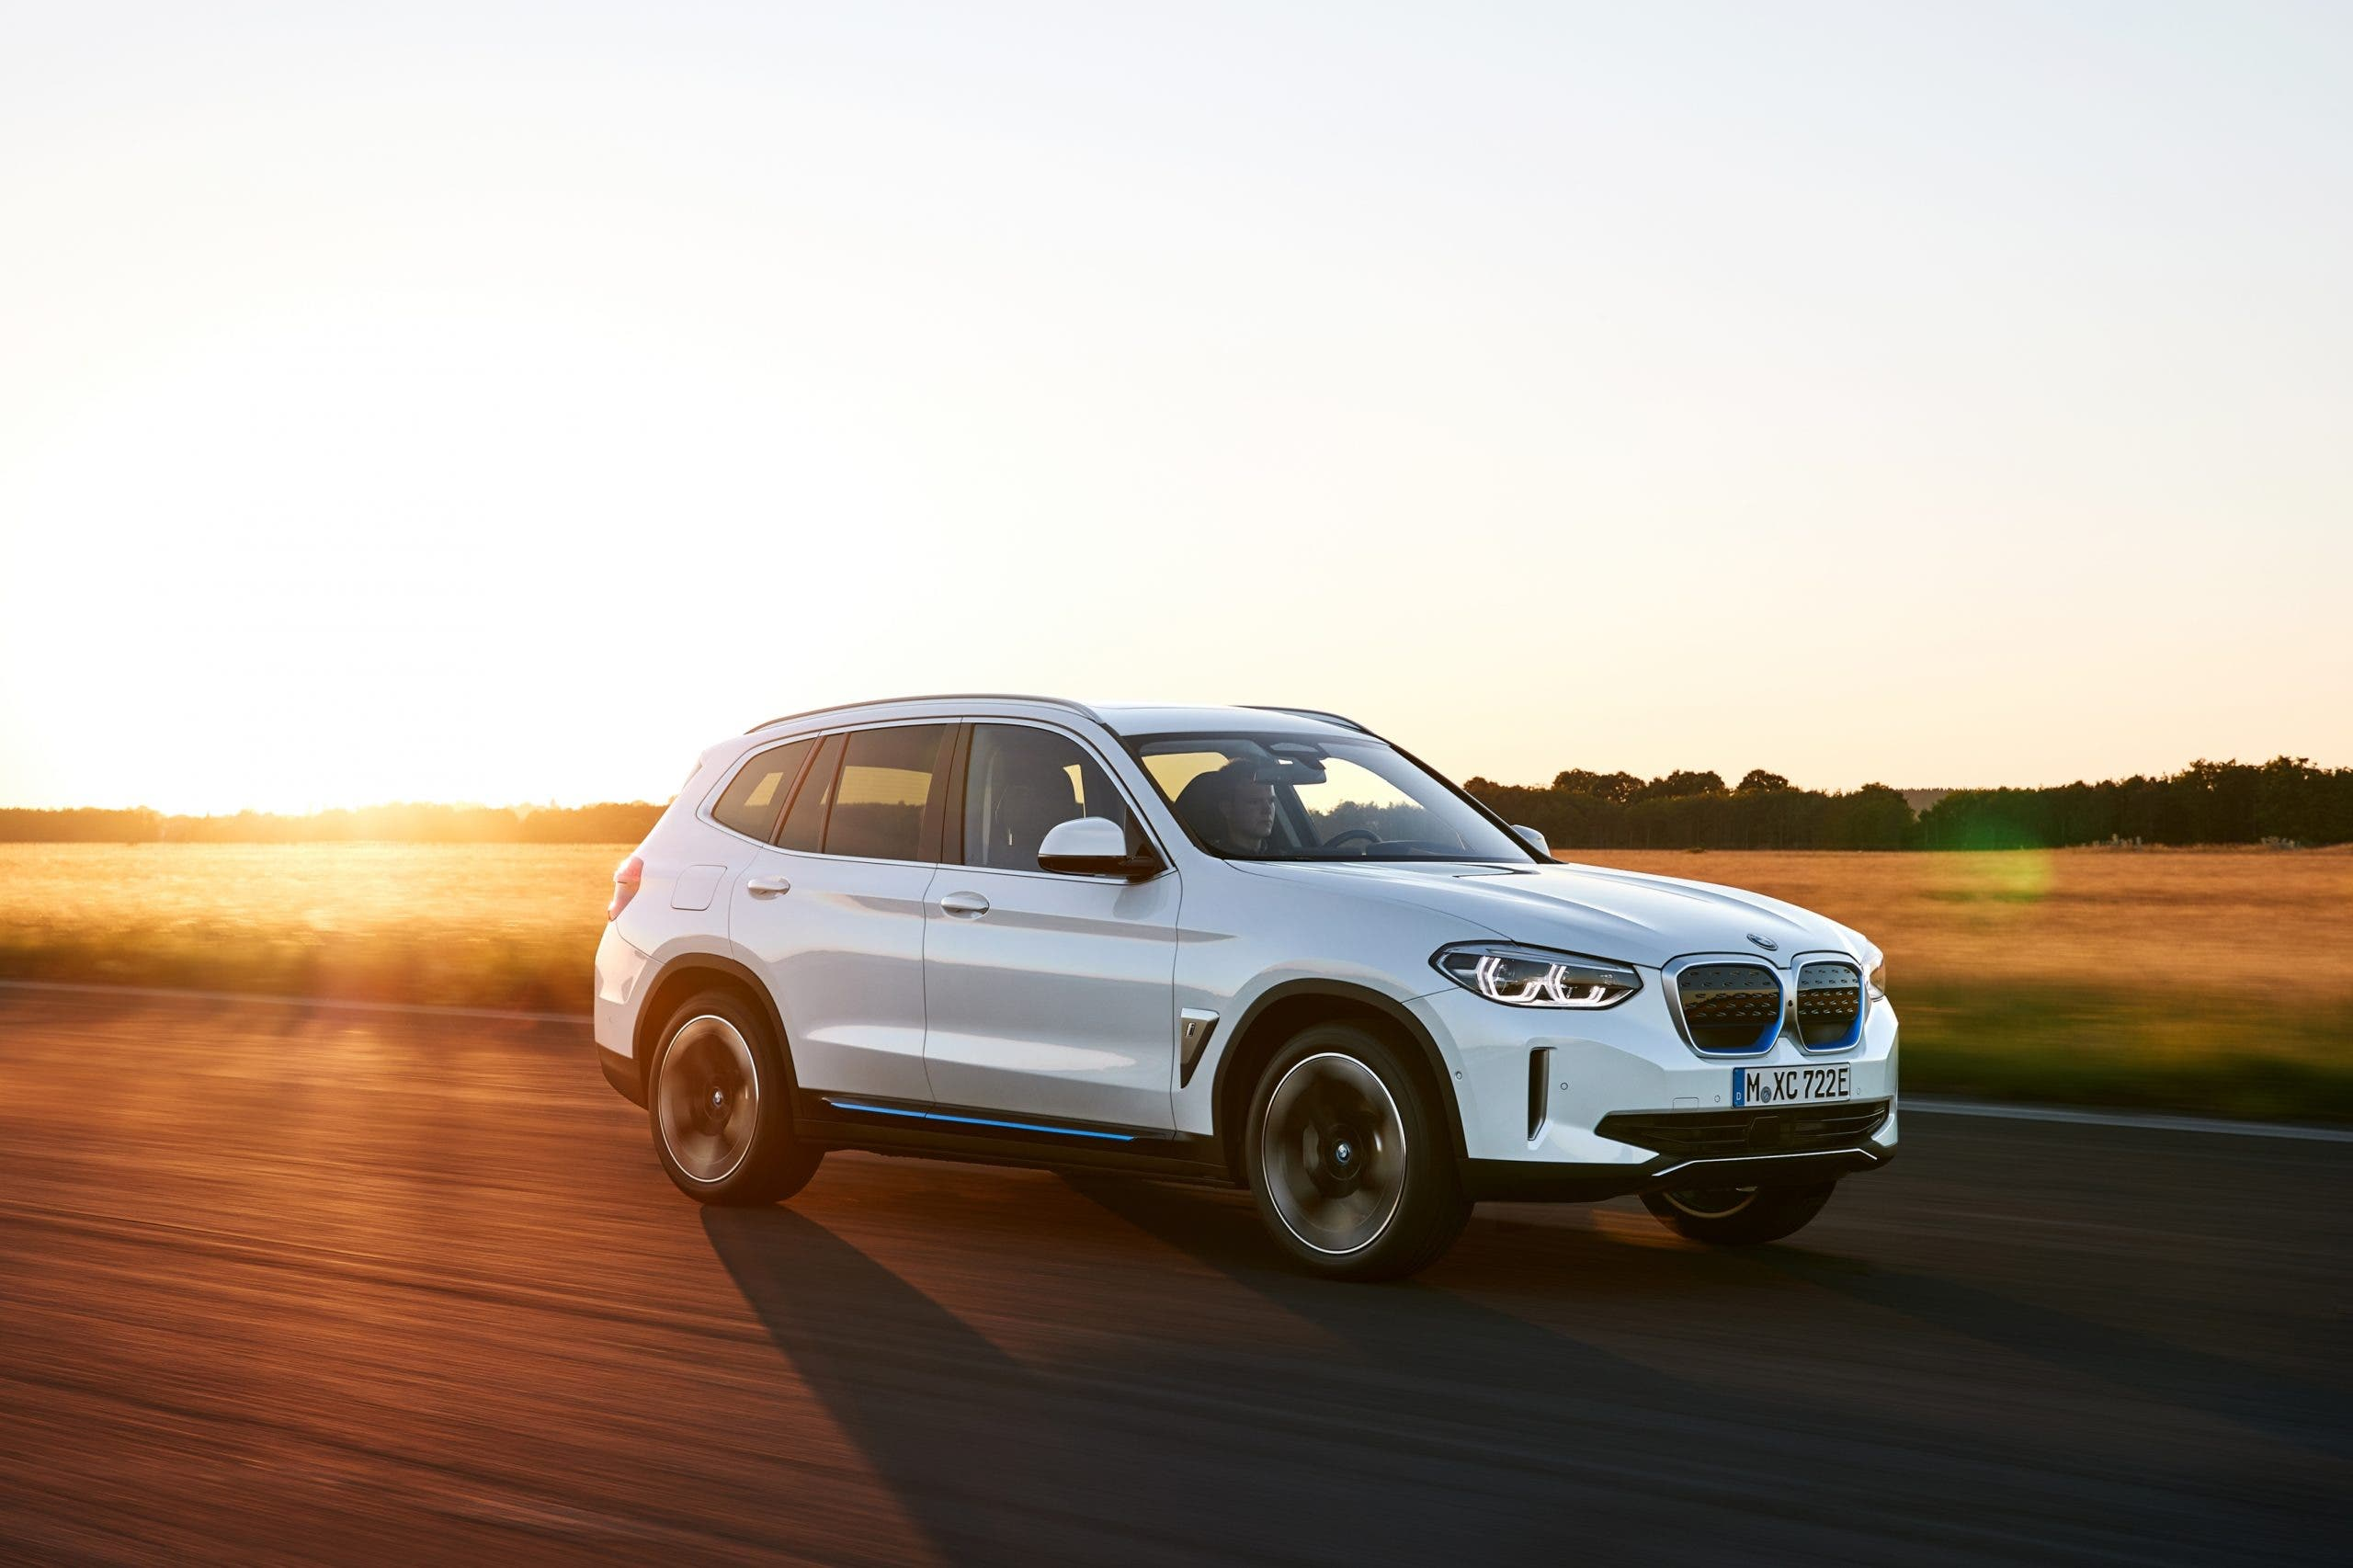 BMW iX3 electric SUV unveiled